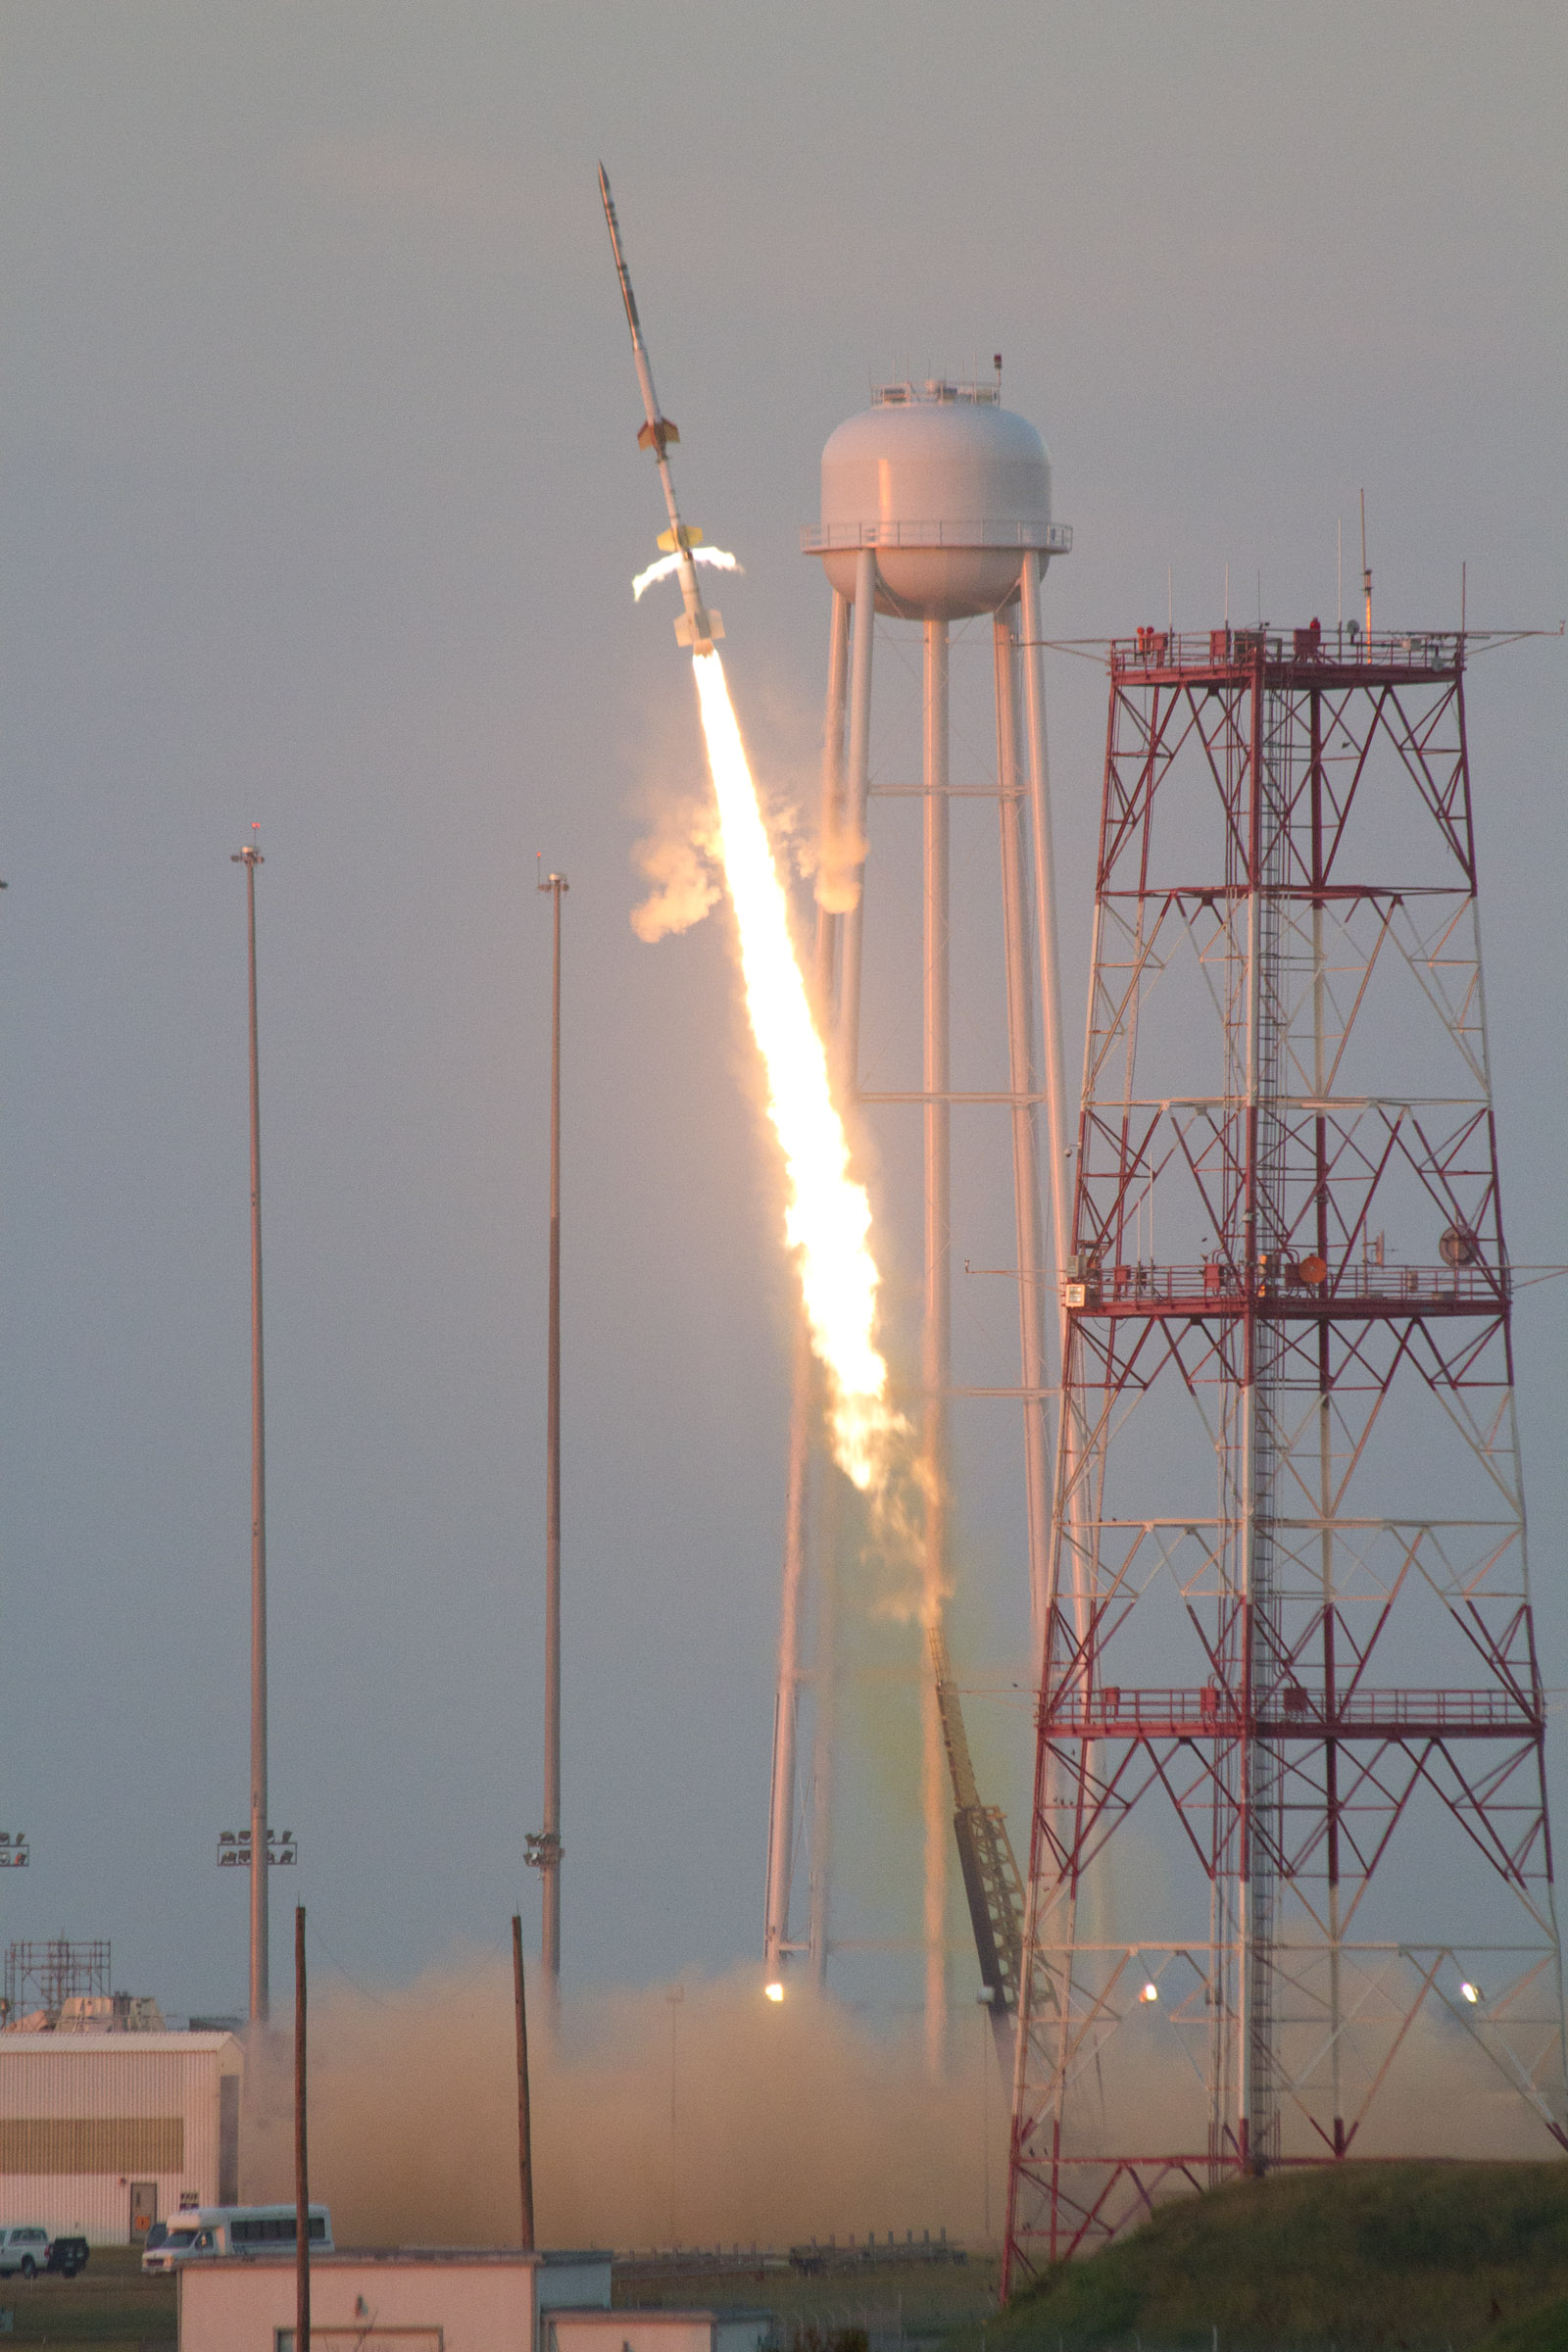 NASA successfully tested a new suborbital sounding rocket, a Talos-Terrier-Oriole, today from the agency's launch range at the Wallops Flight Facility in Virginia.